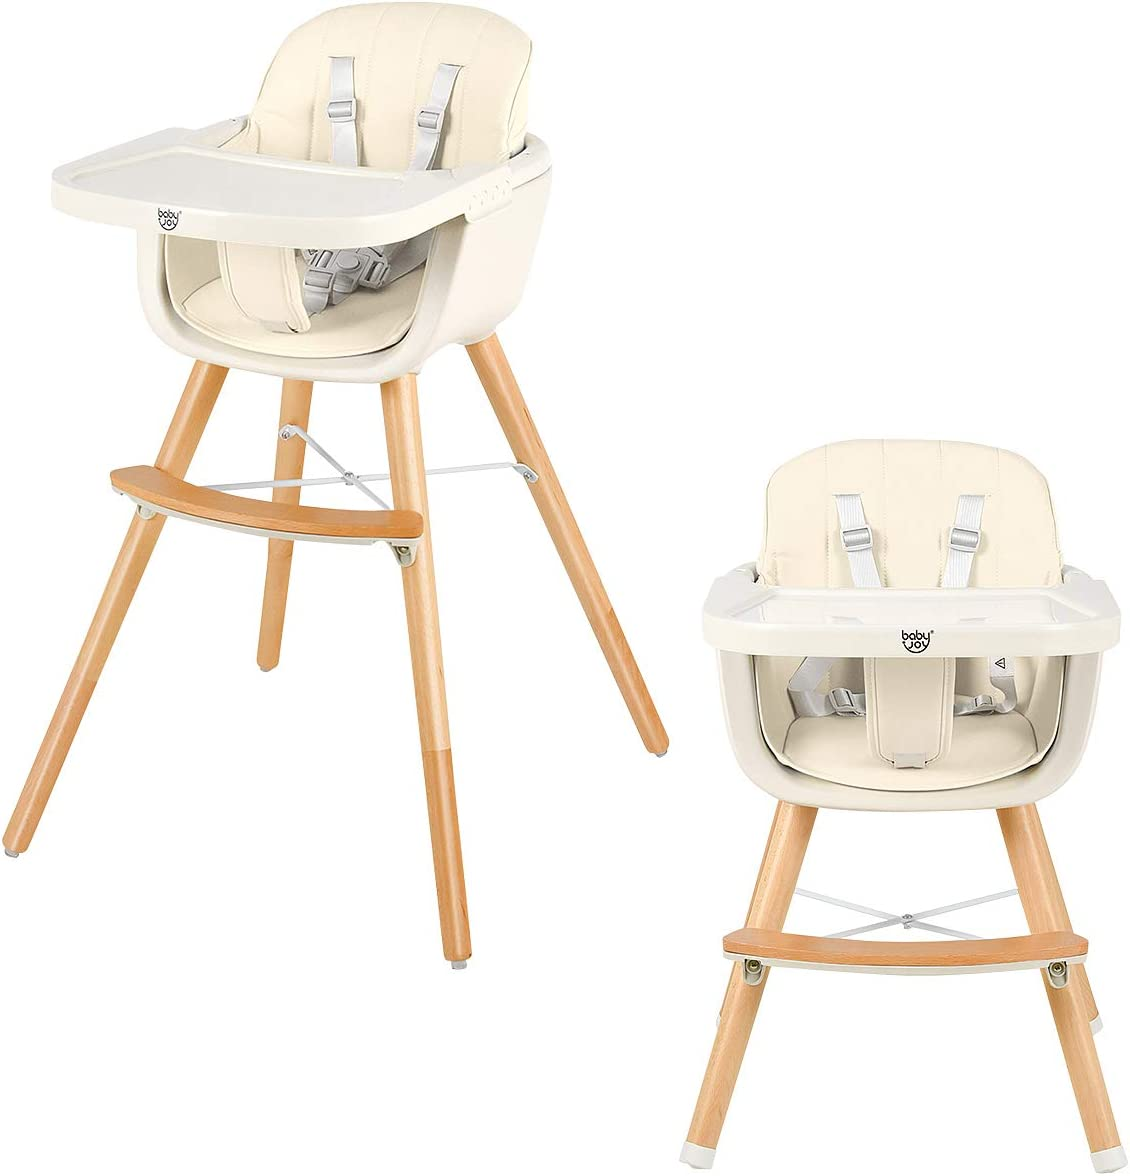 Blue Baby Dining Chair Adjustable Multi Function Compact 3 in 1 Function Highchair with Tray Feeding Toddler